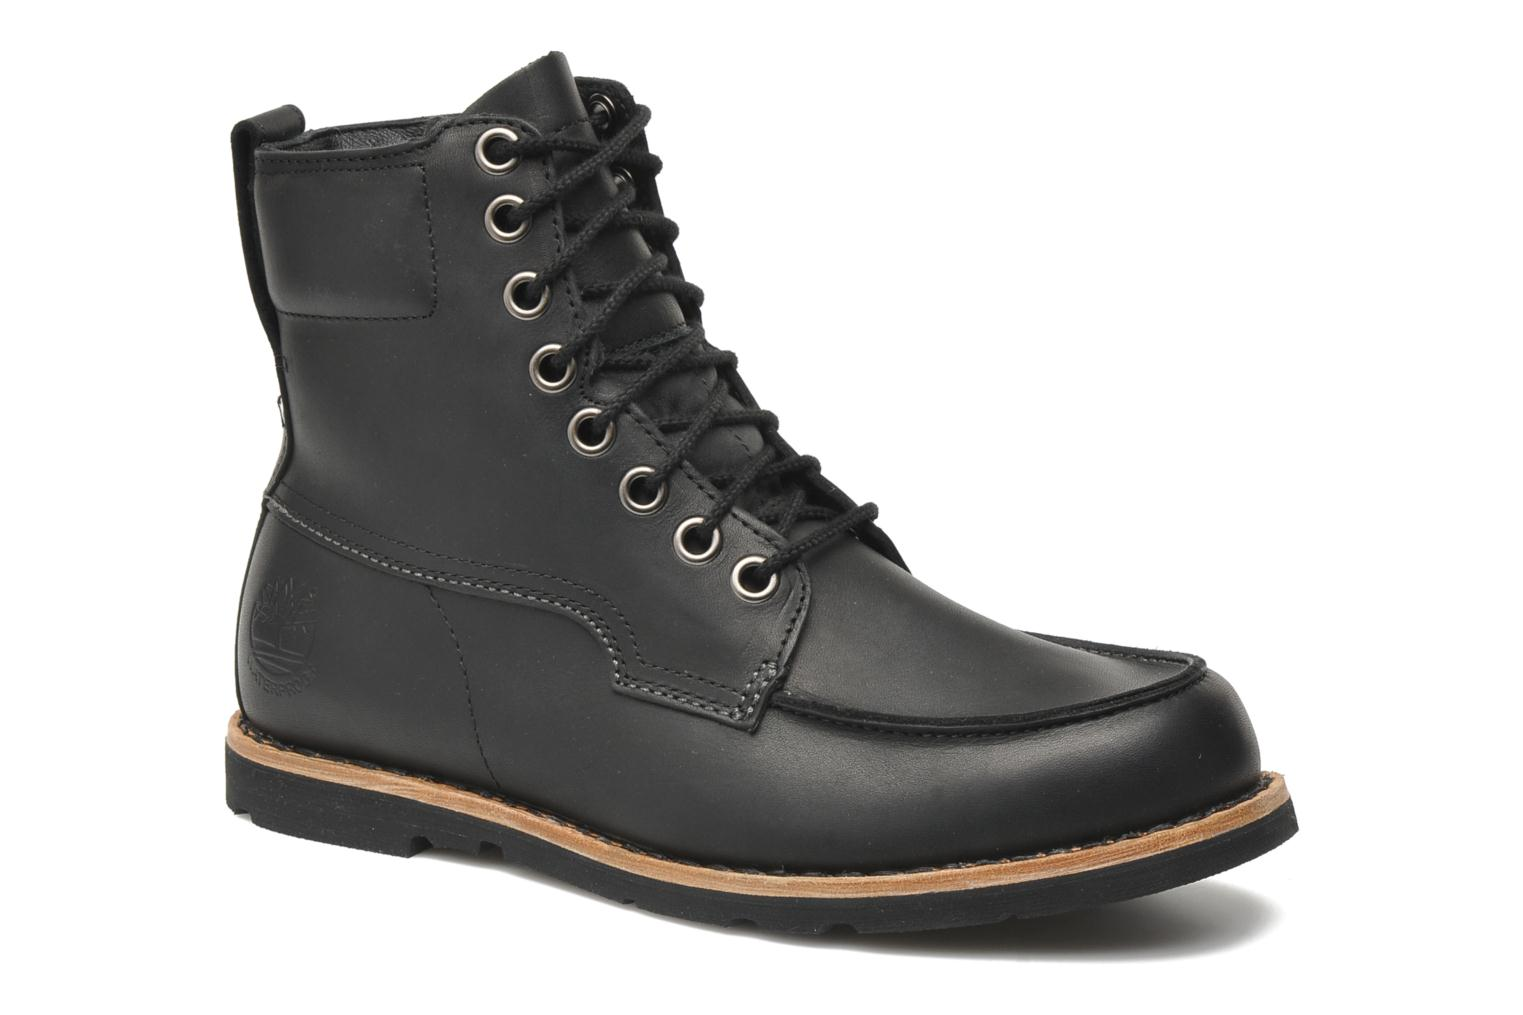 Earthkeepers original 2.0 rugged 6 moc toe boot Black Oiled